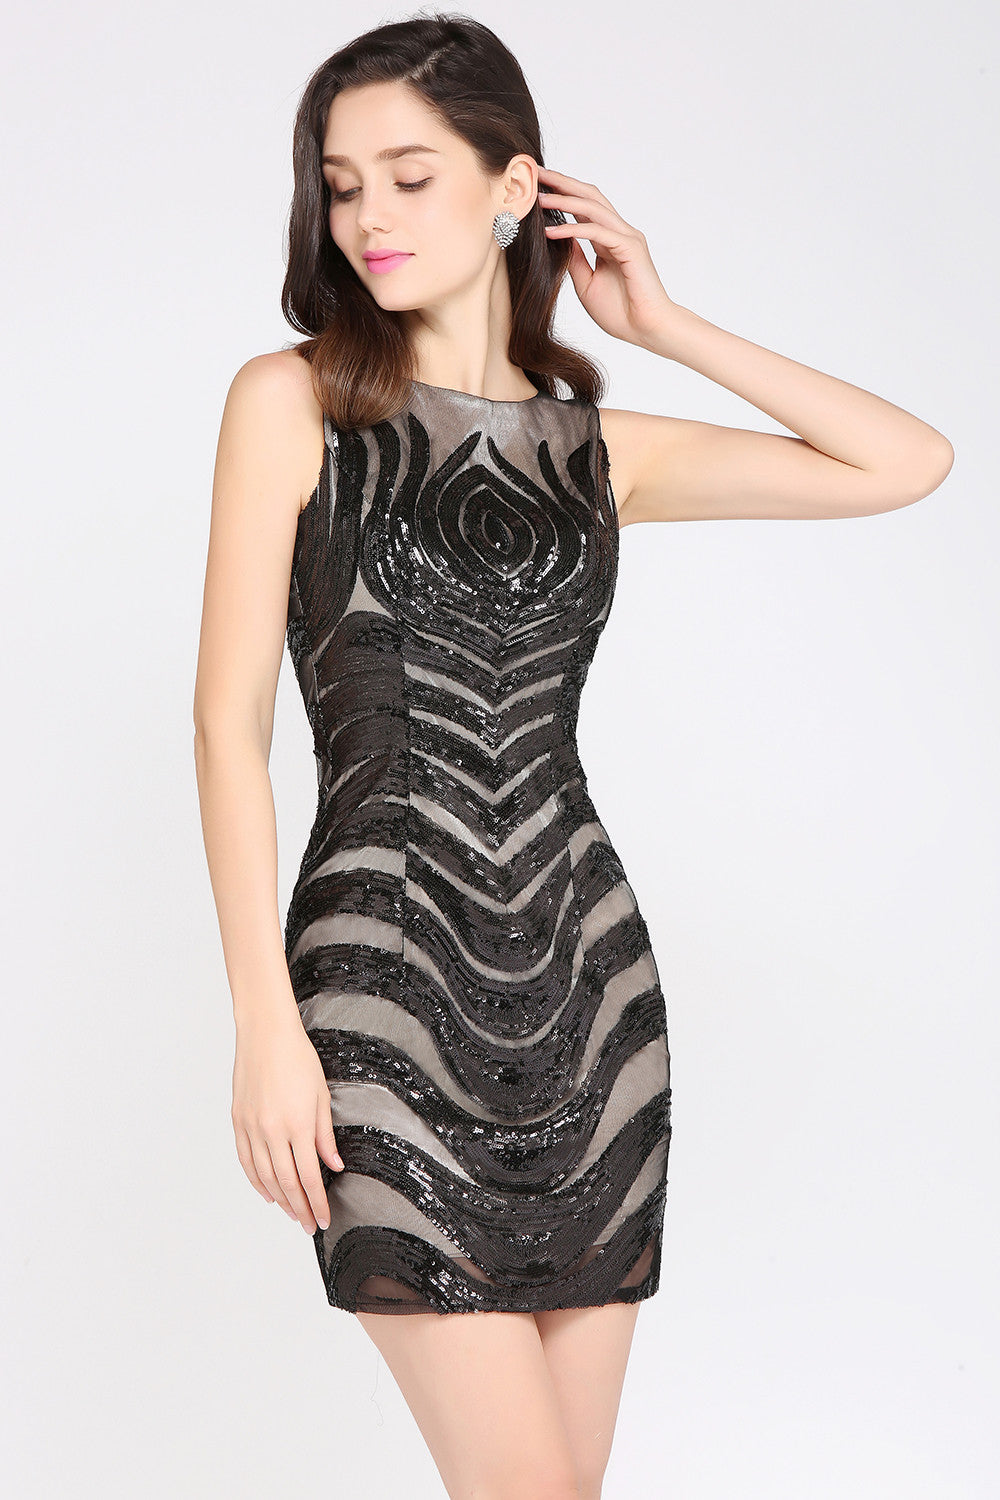 Chicolth Only The Lonely Cocktail Dress-Dresses-Chicloth